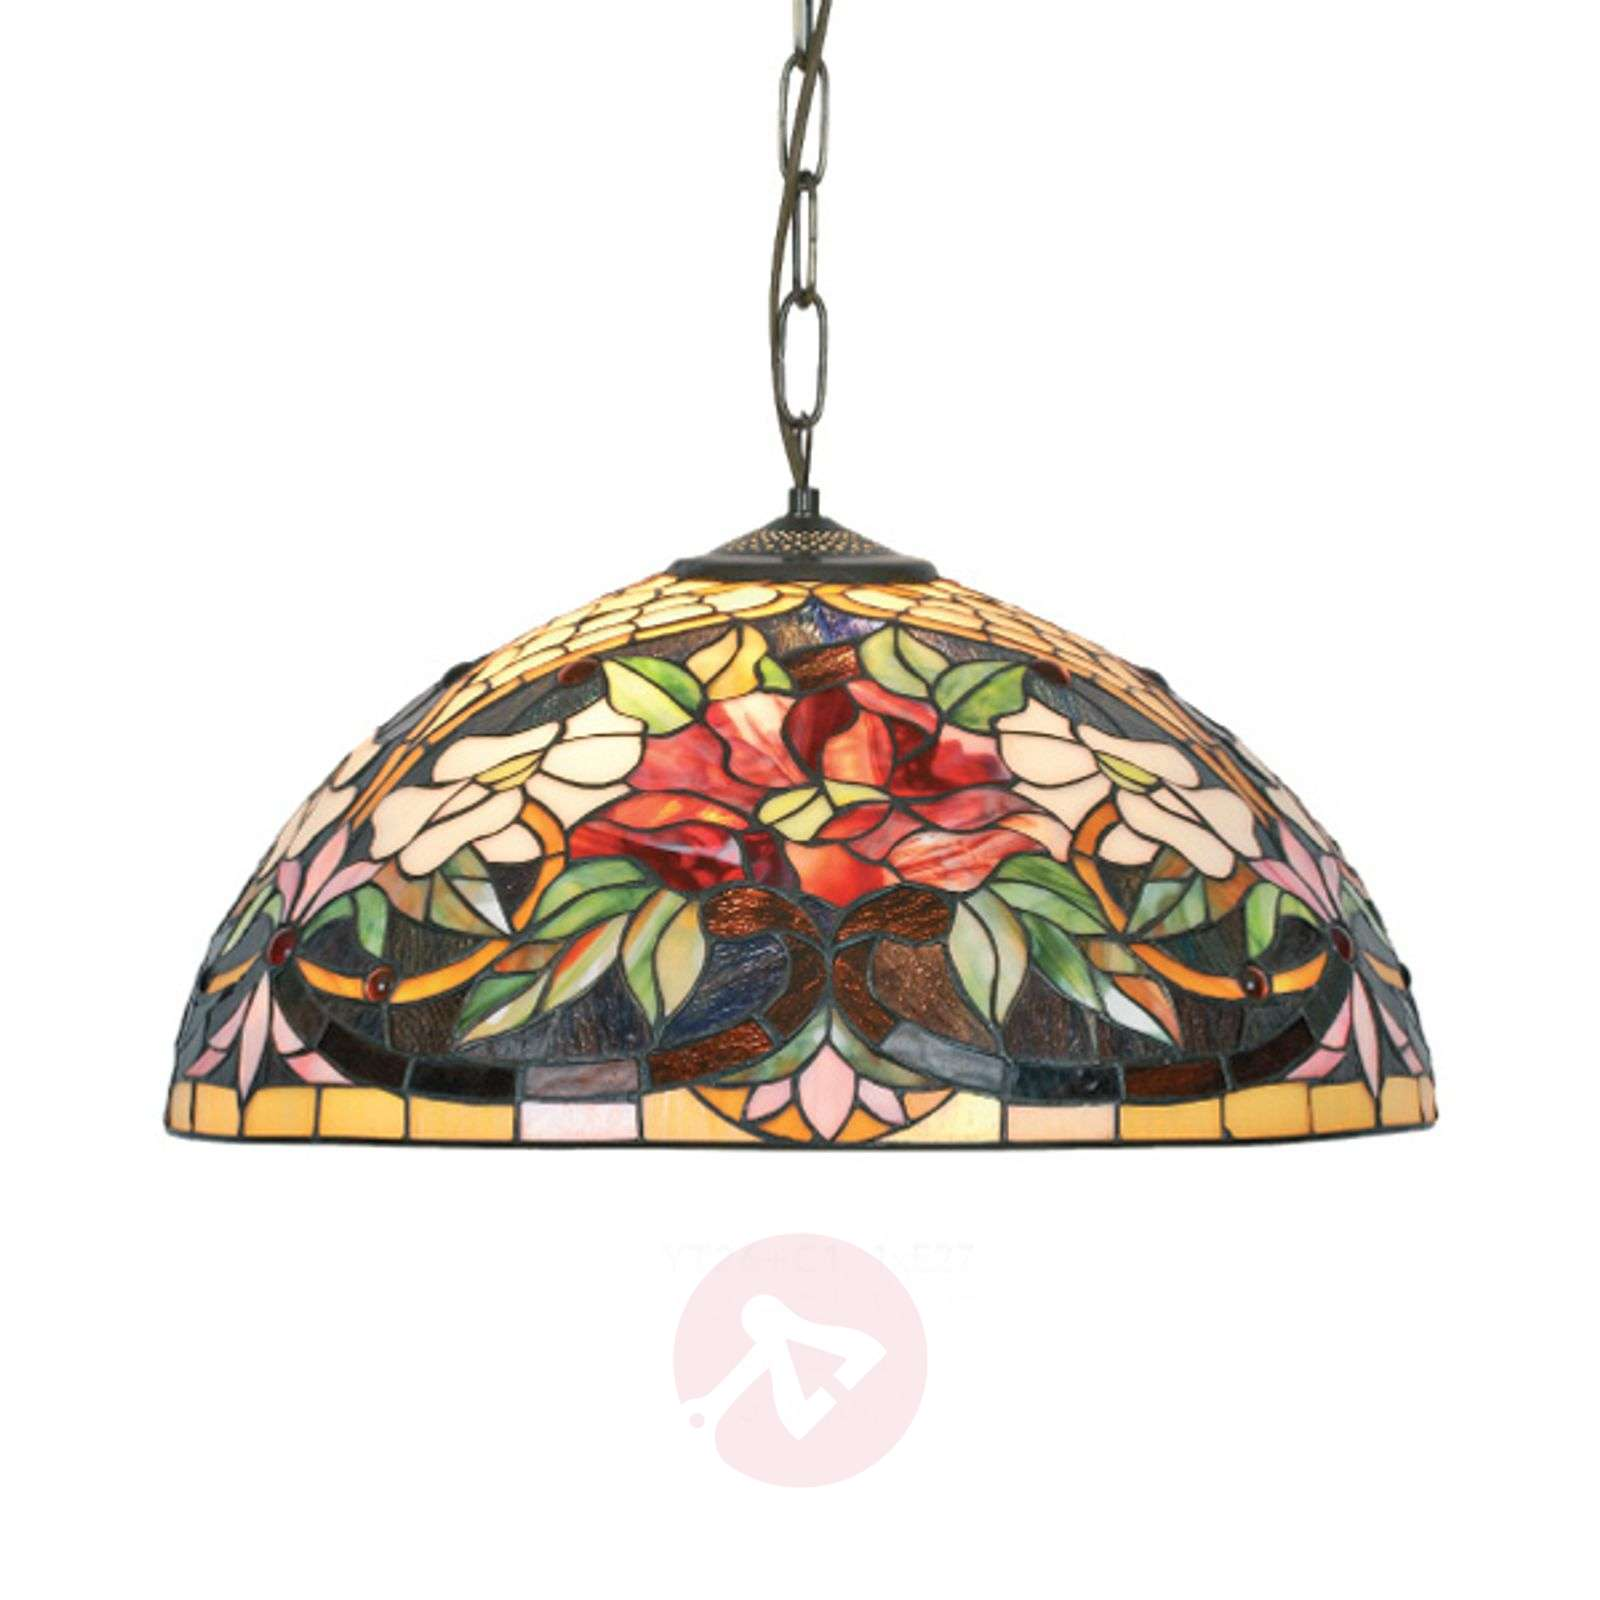 Suspension Ariadne style Tiffany à 2 lampes-1032149-01